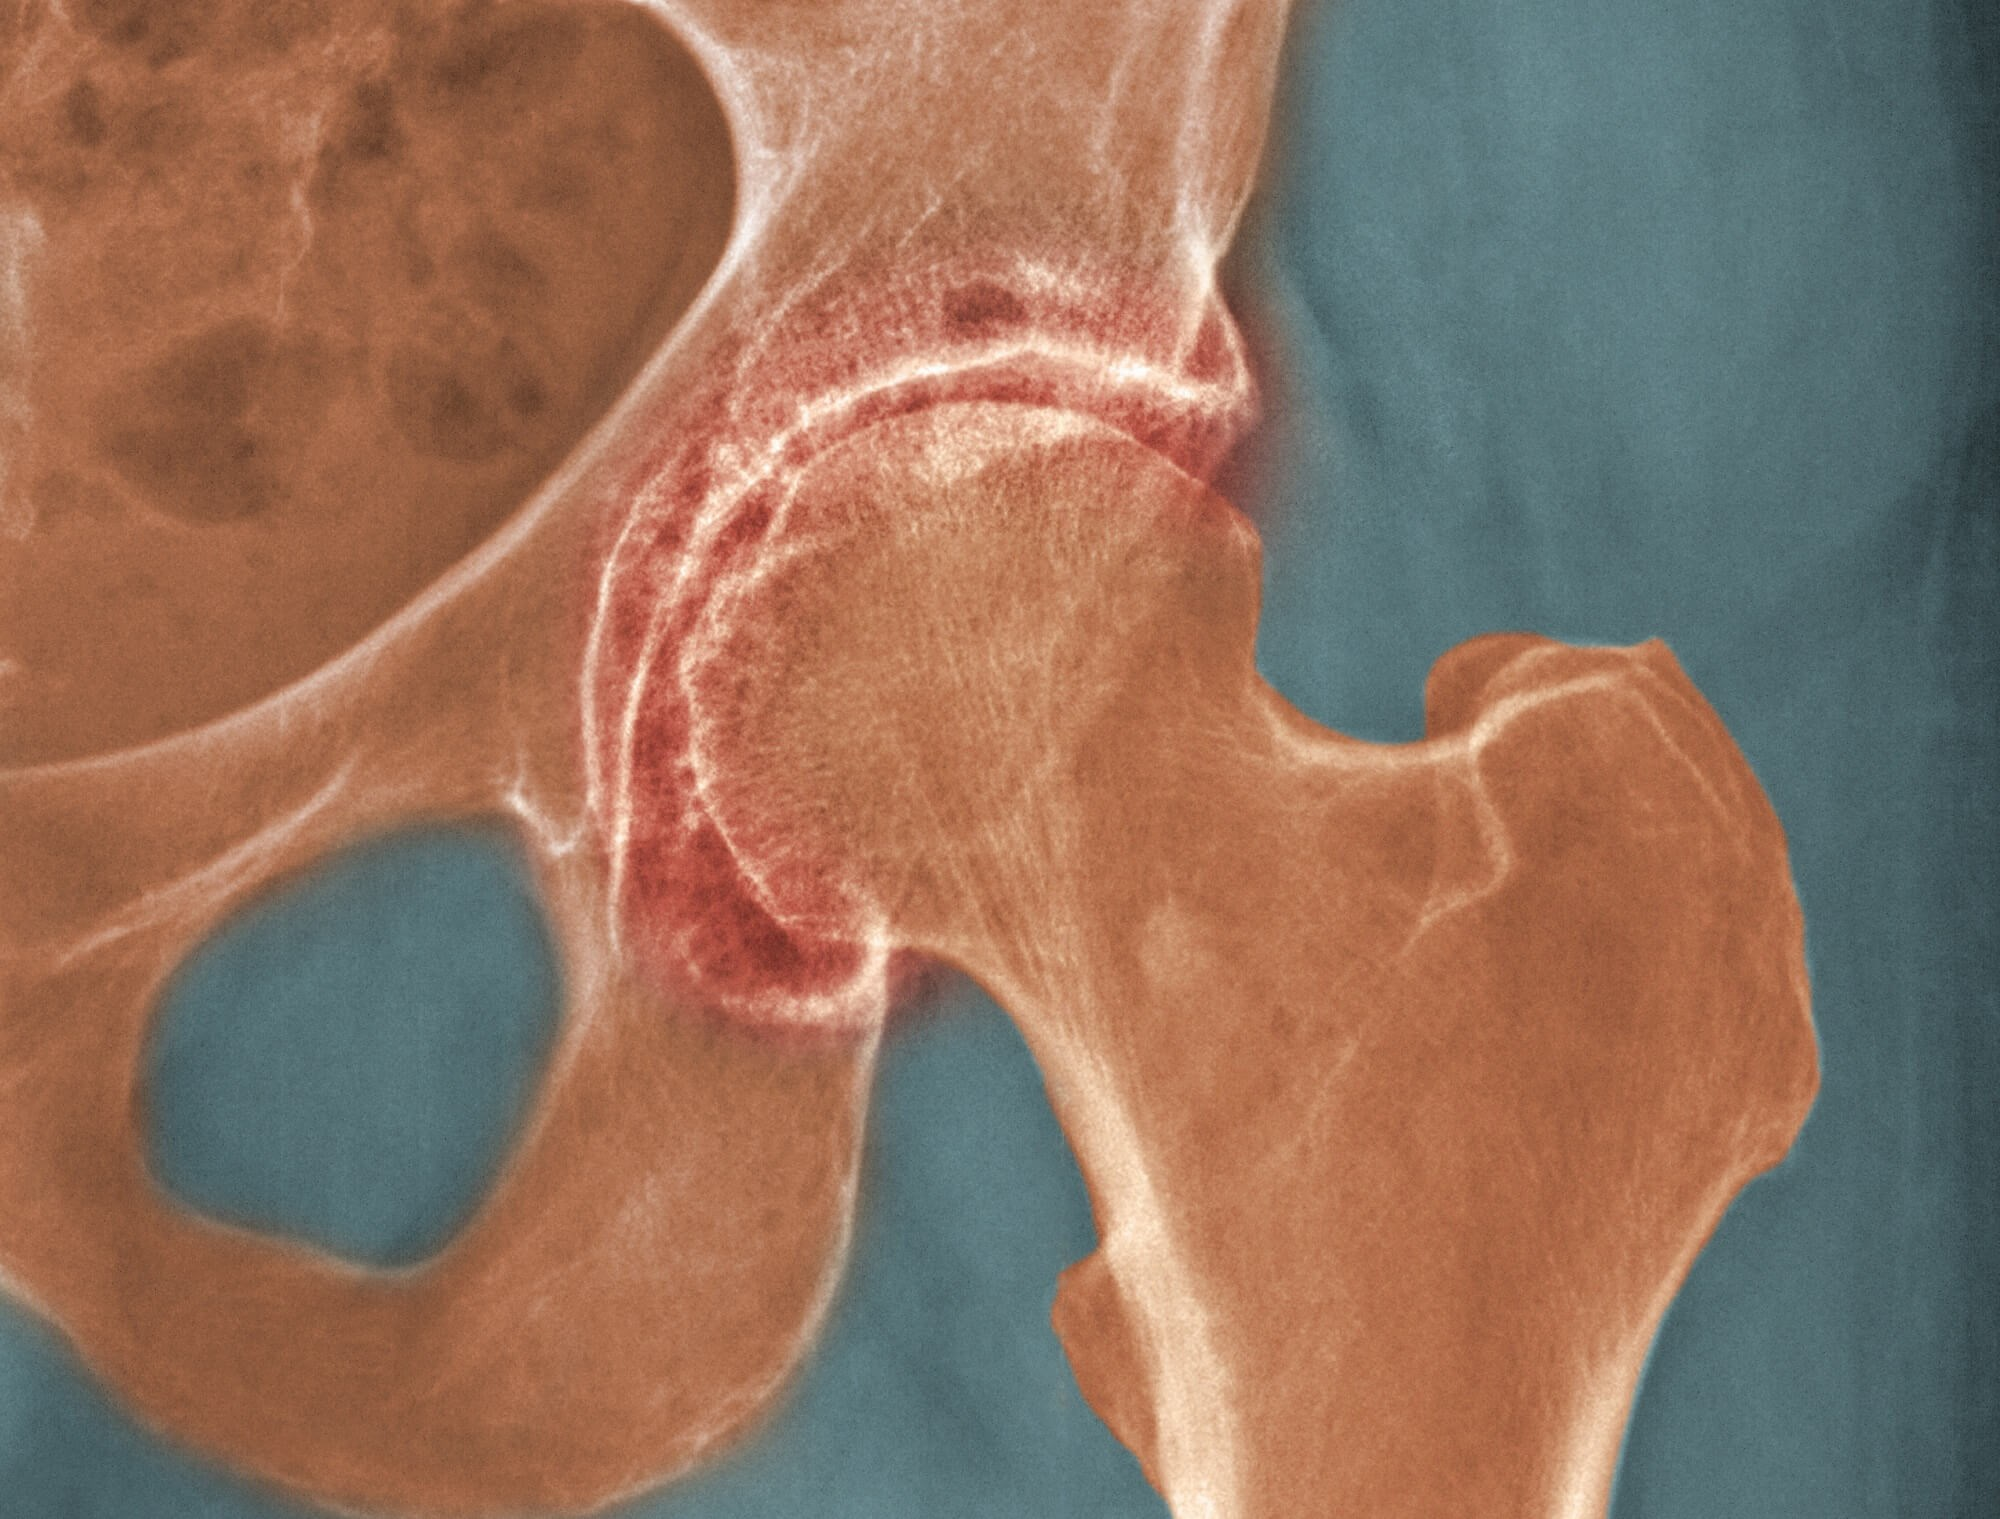 Pain Catastrophizing Associated With Quality of Life in Hip Osteoarthritis